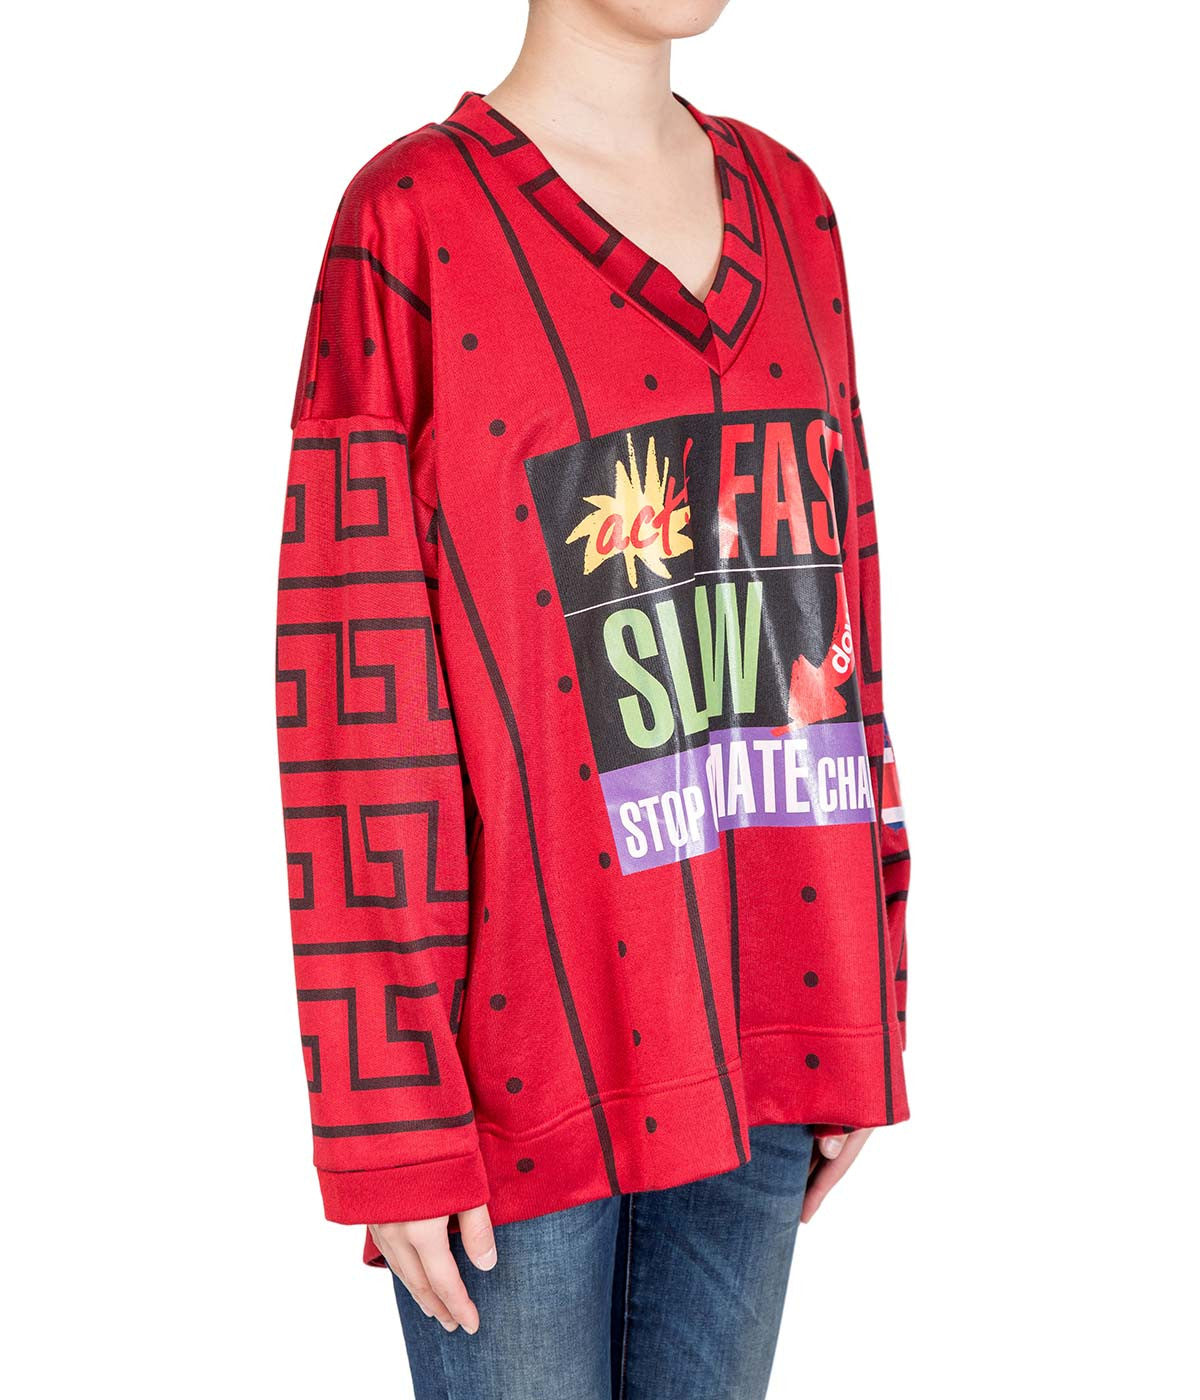 Oversized Red Act Fast Top